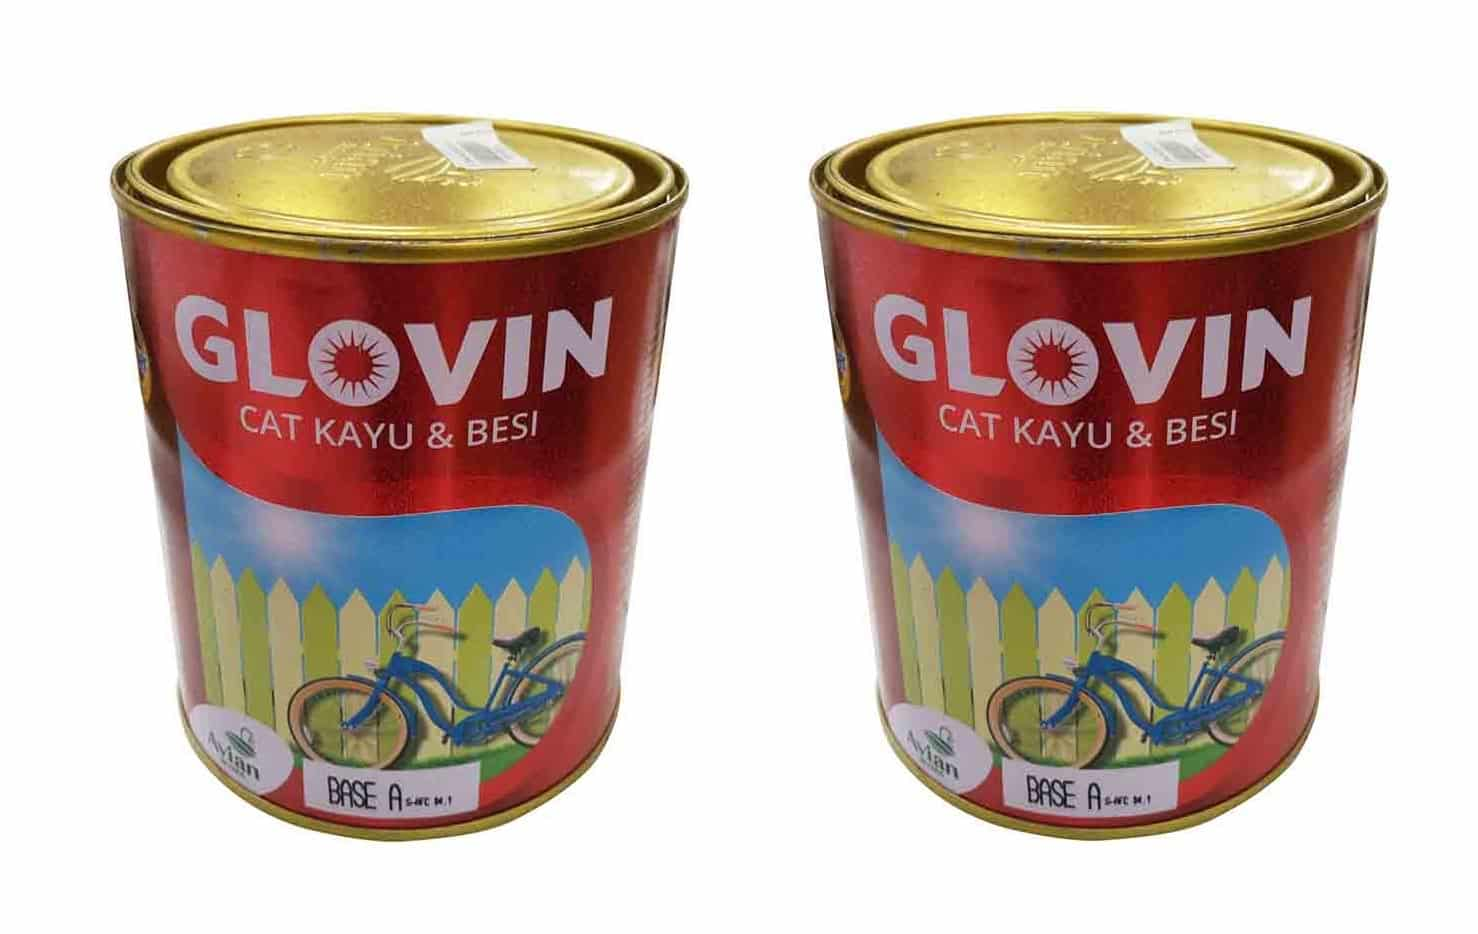 Cat-Kayu-Glovin